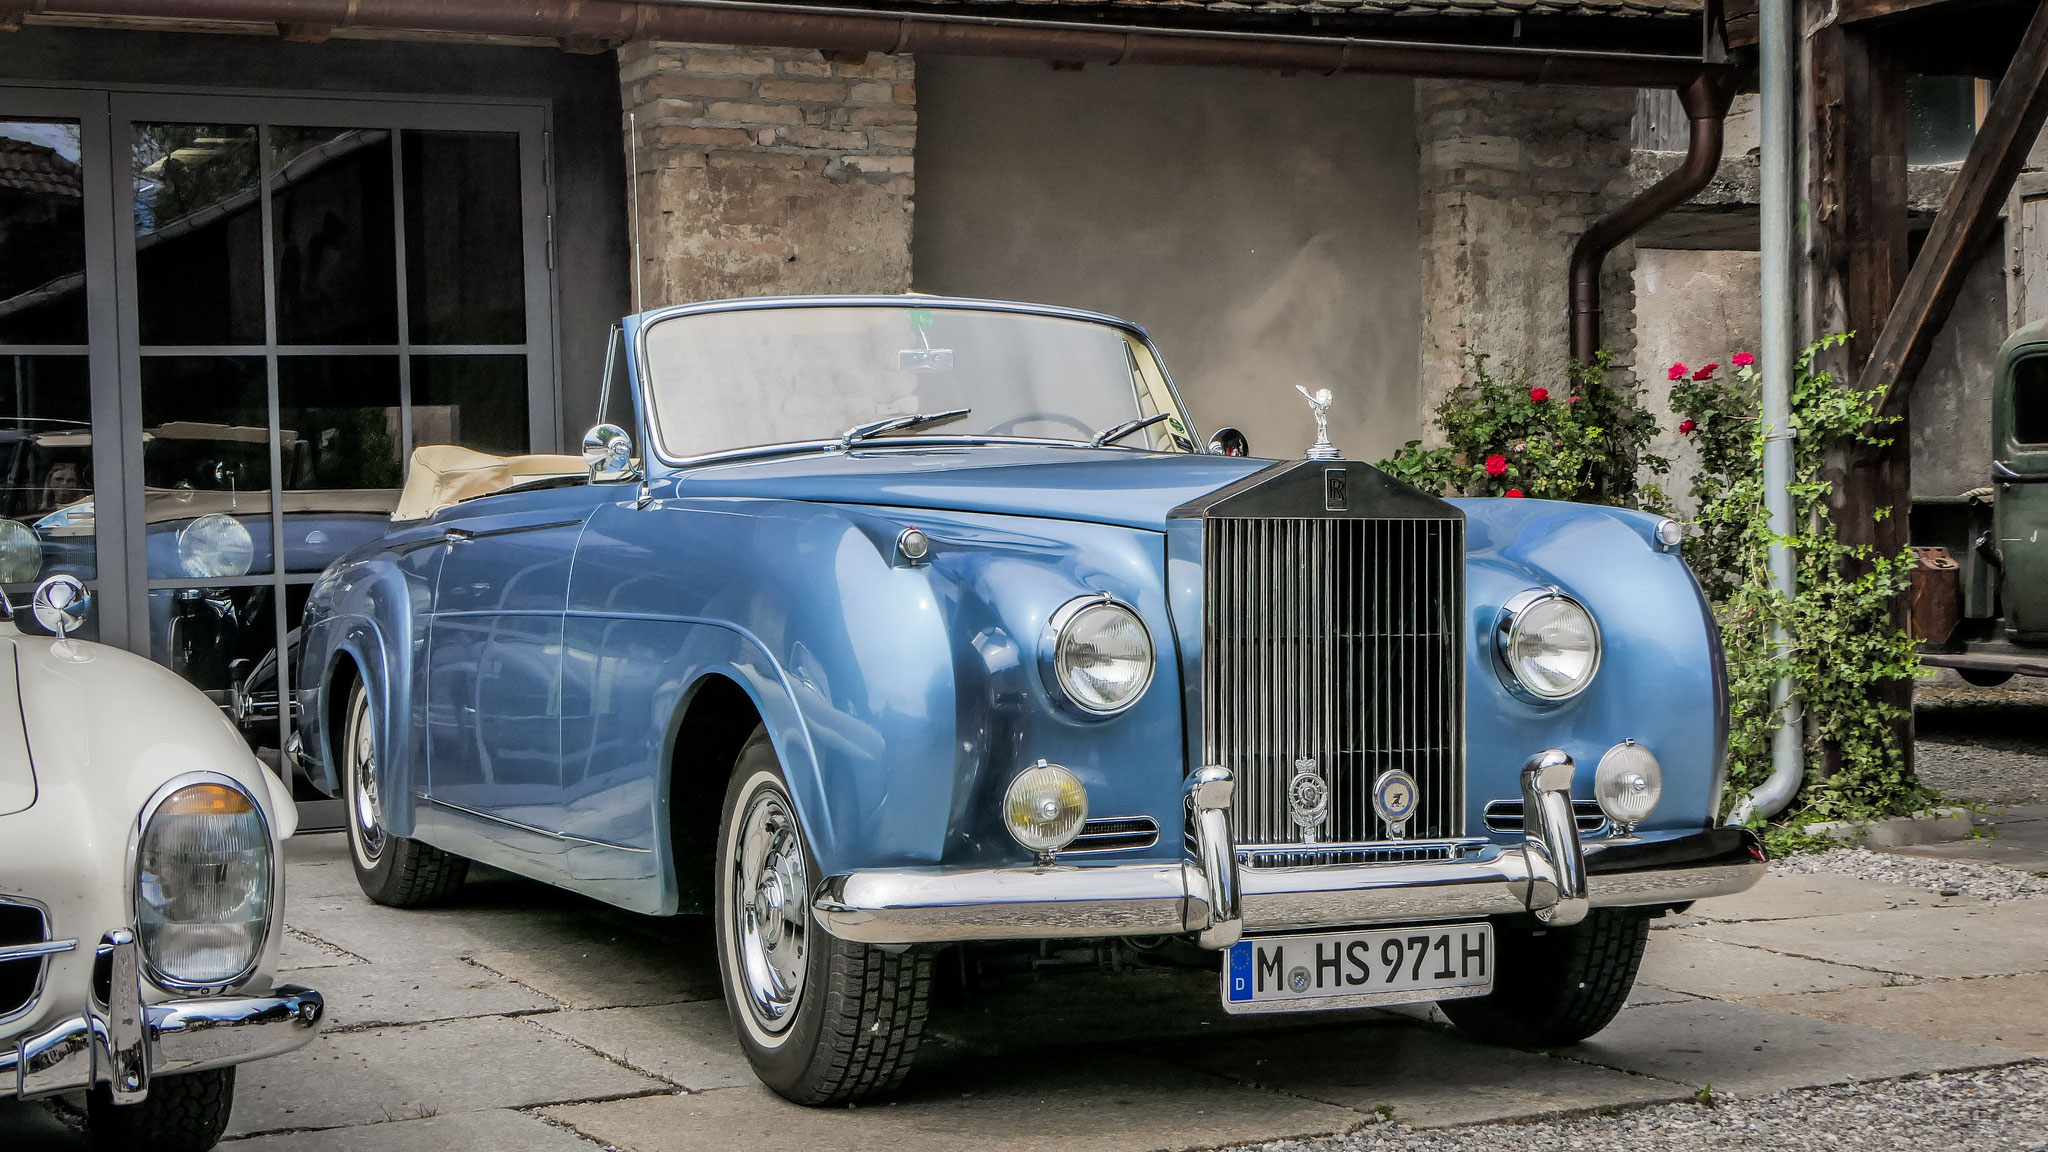 Rolls Royce Silver Cloud Convertible - M-HS-971H